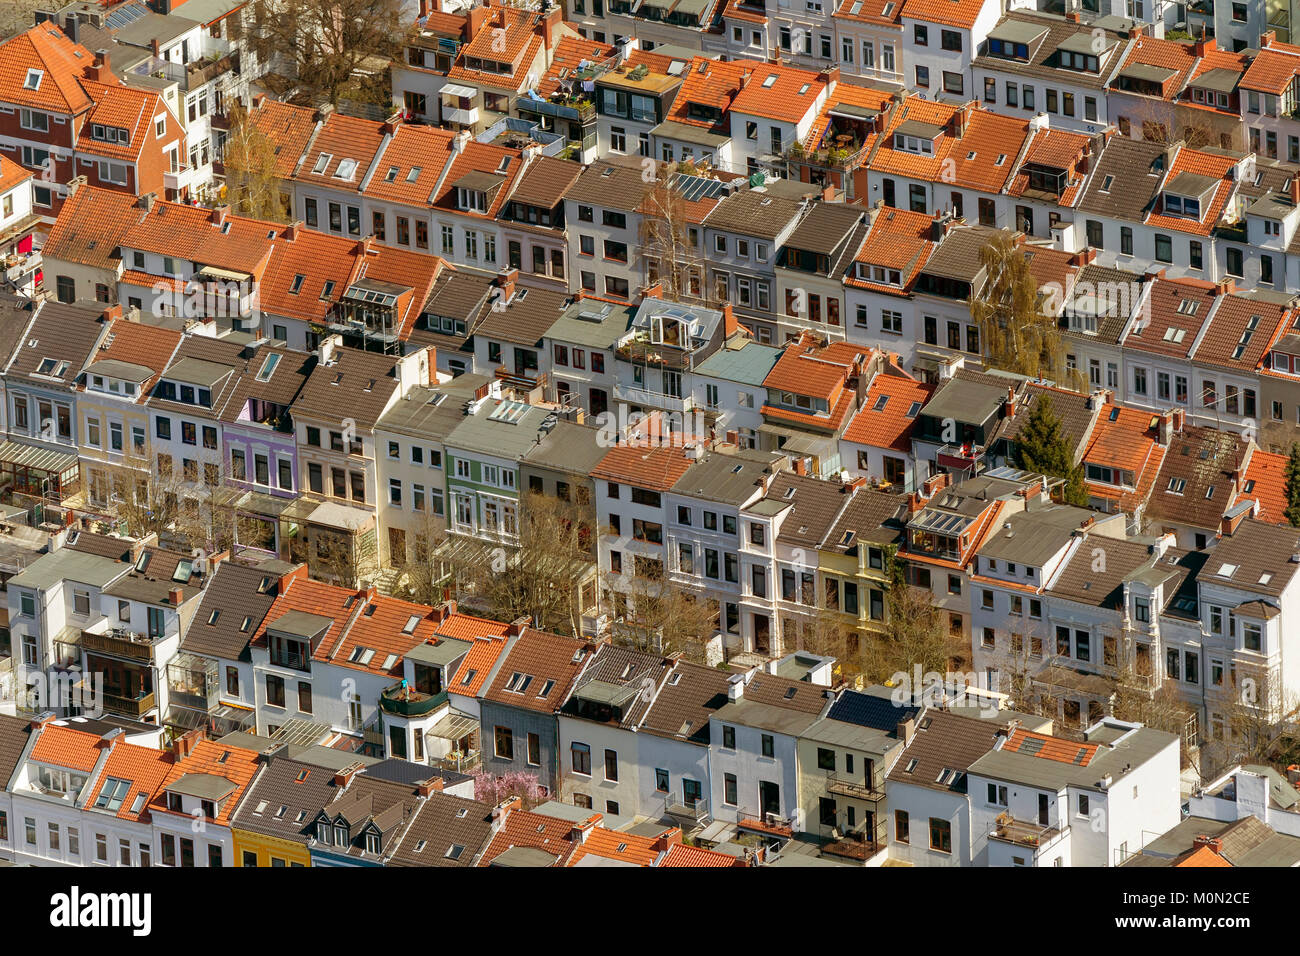 Row of houses in the district Findorff, tenements, flats, red tiled roofs, penthouses, aerial view, aerial photographs - Stock Image